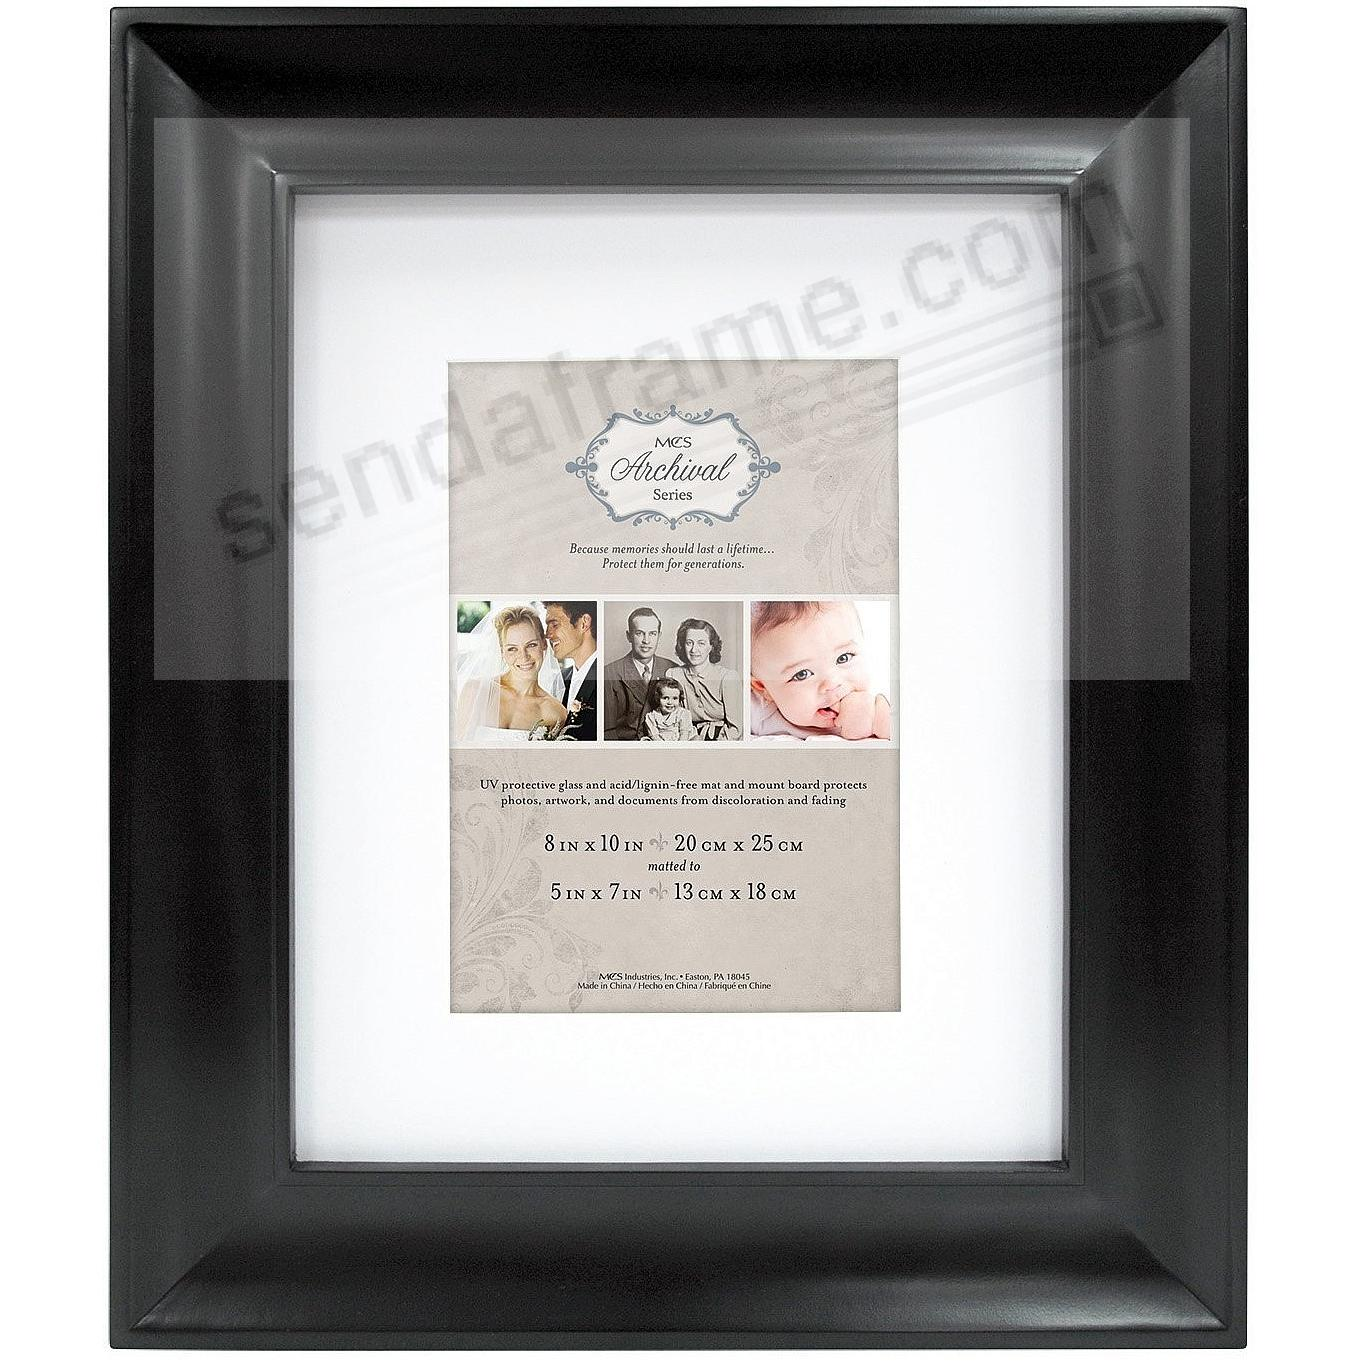 Black ARCHIVAL Matted Wood frame 8x10/5x7 by MCS®